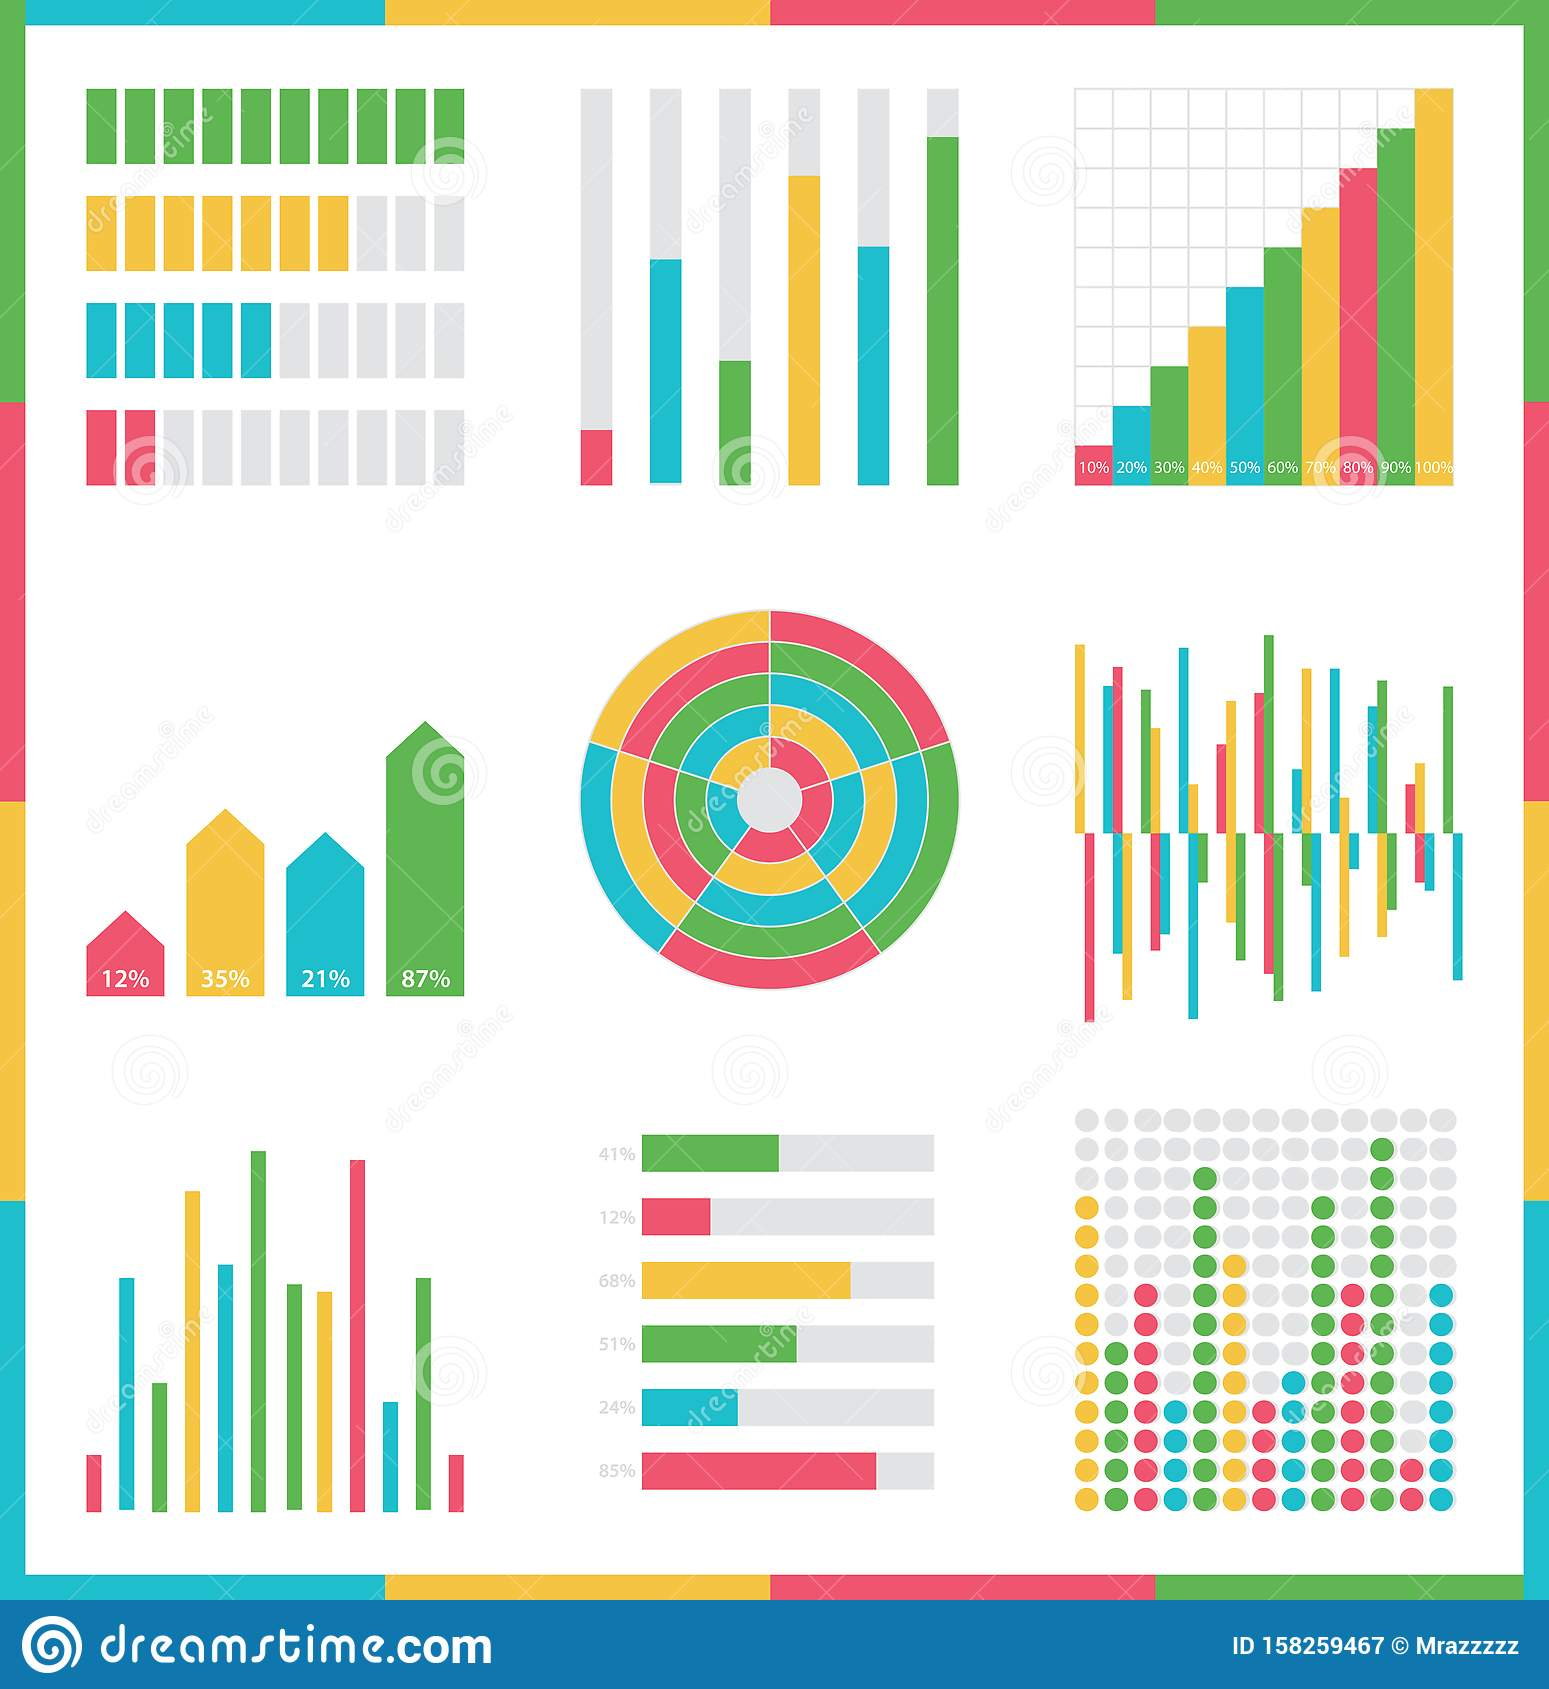 Infographic vector set. Rich collection of elements for marketing presentation, business reports